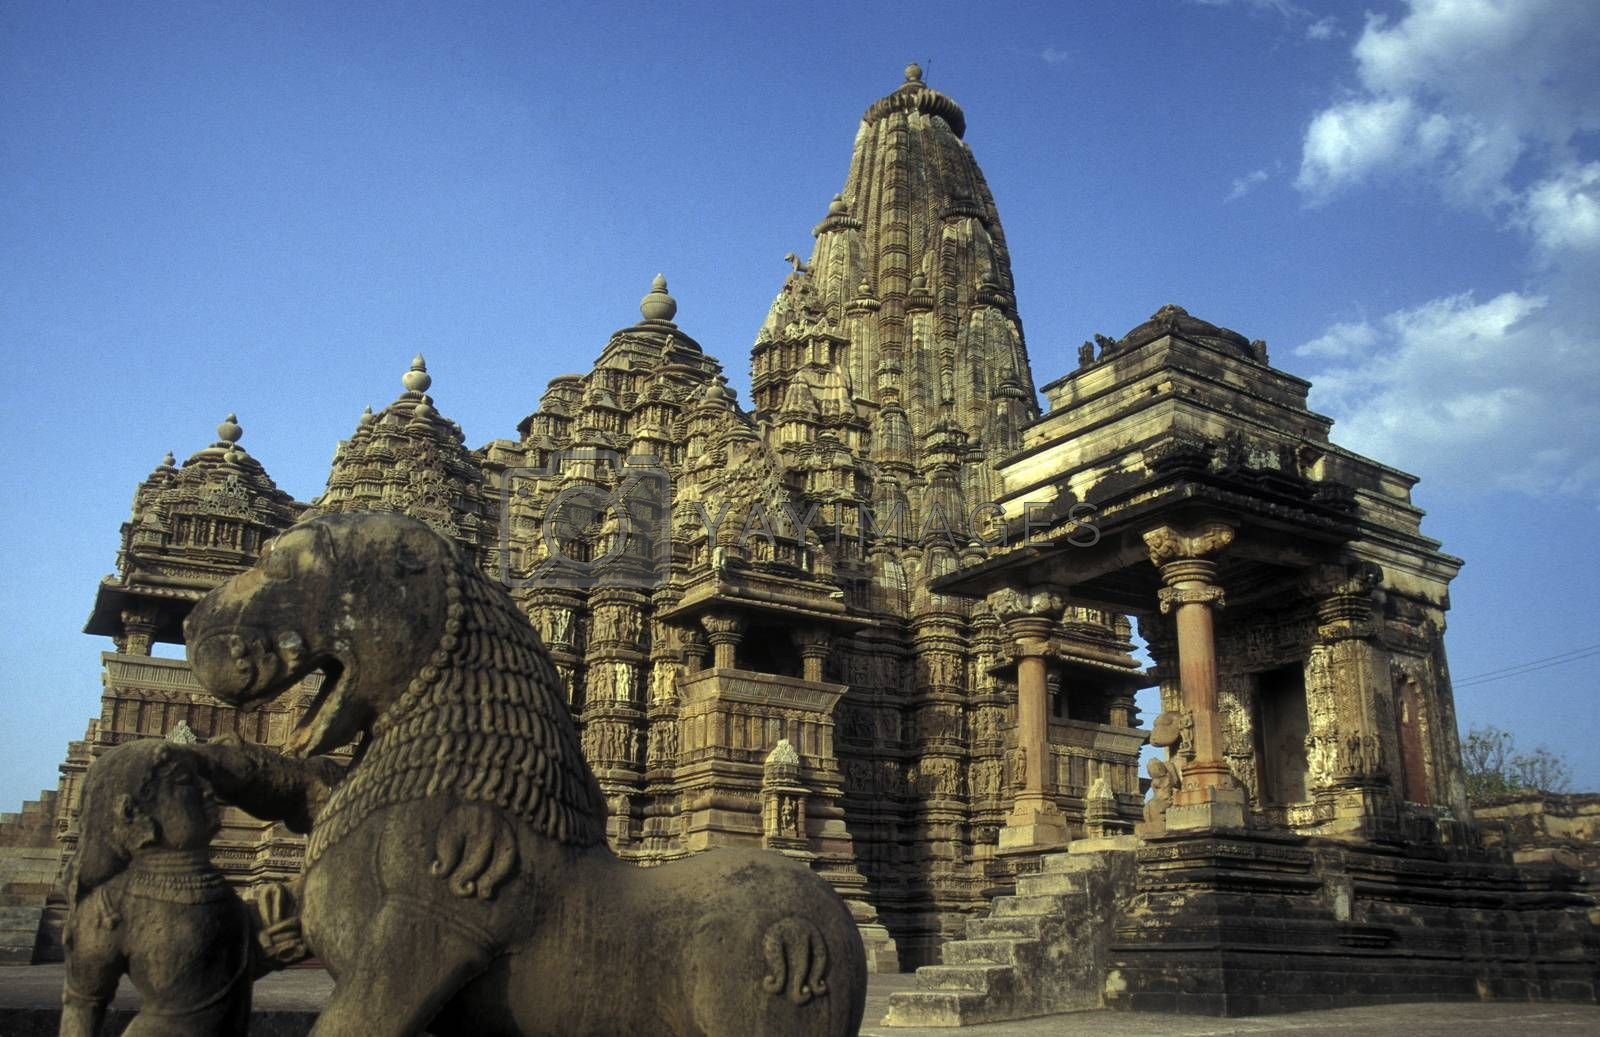 The Temple of Khajuraho in the province of Uttar Pradesh in India.